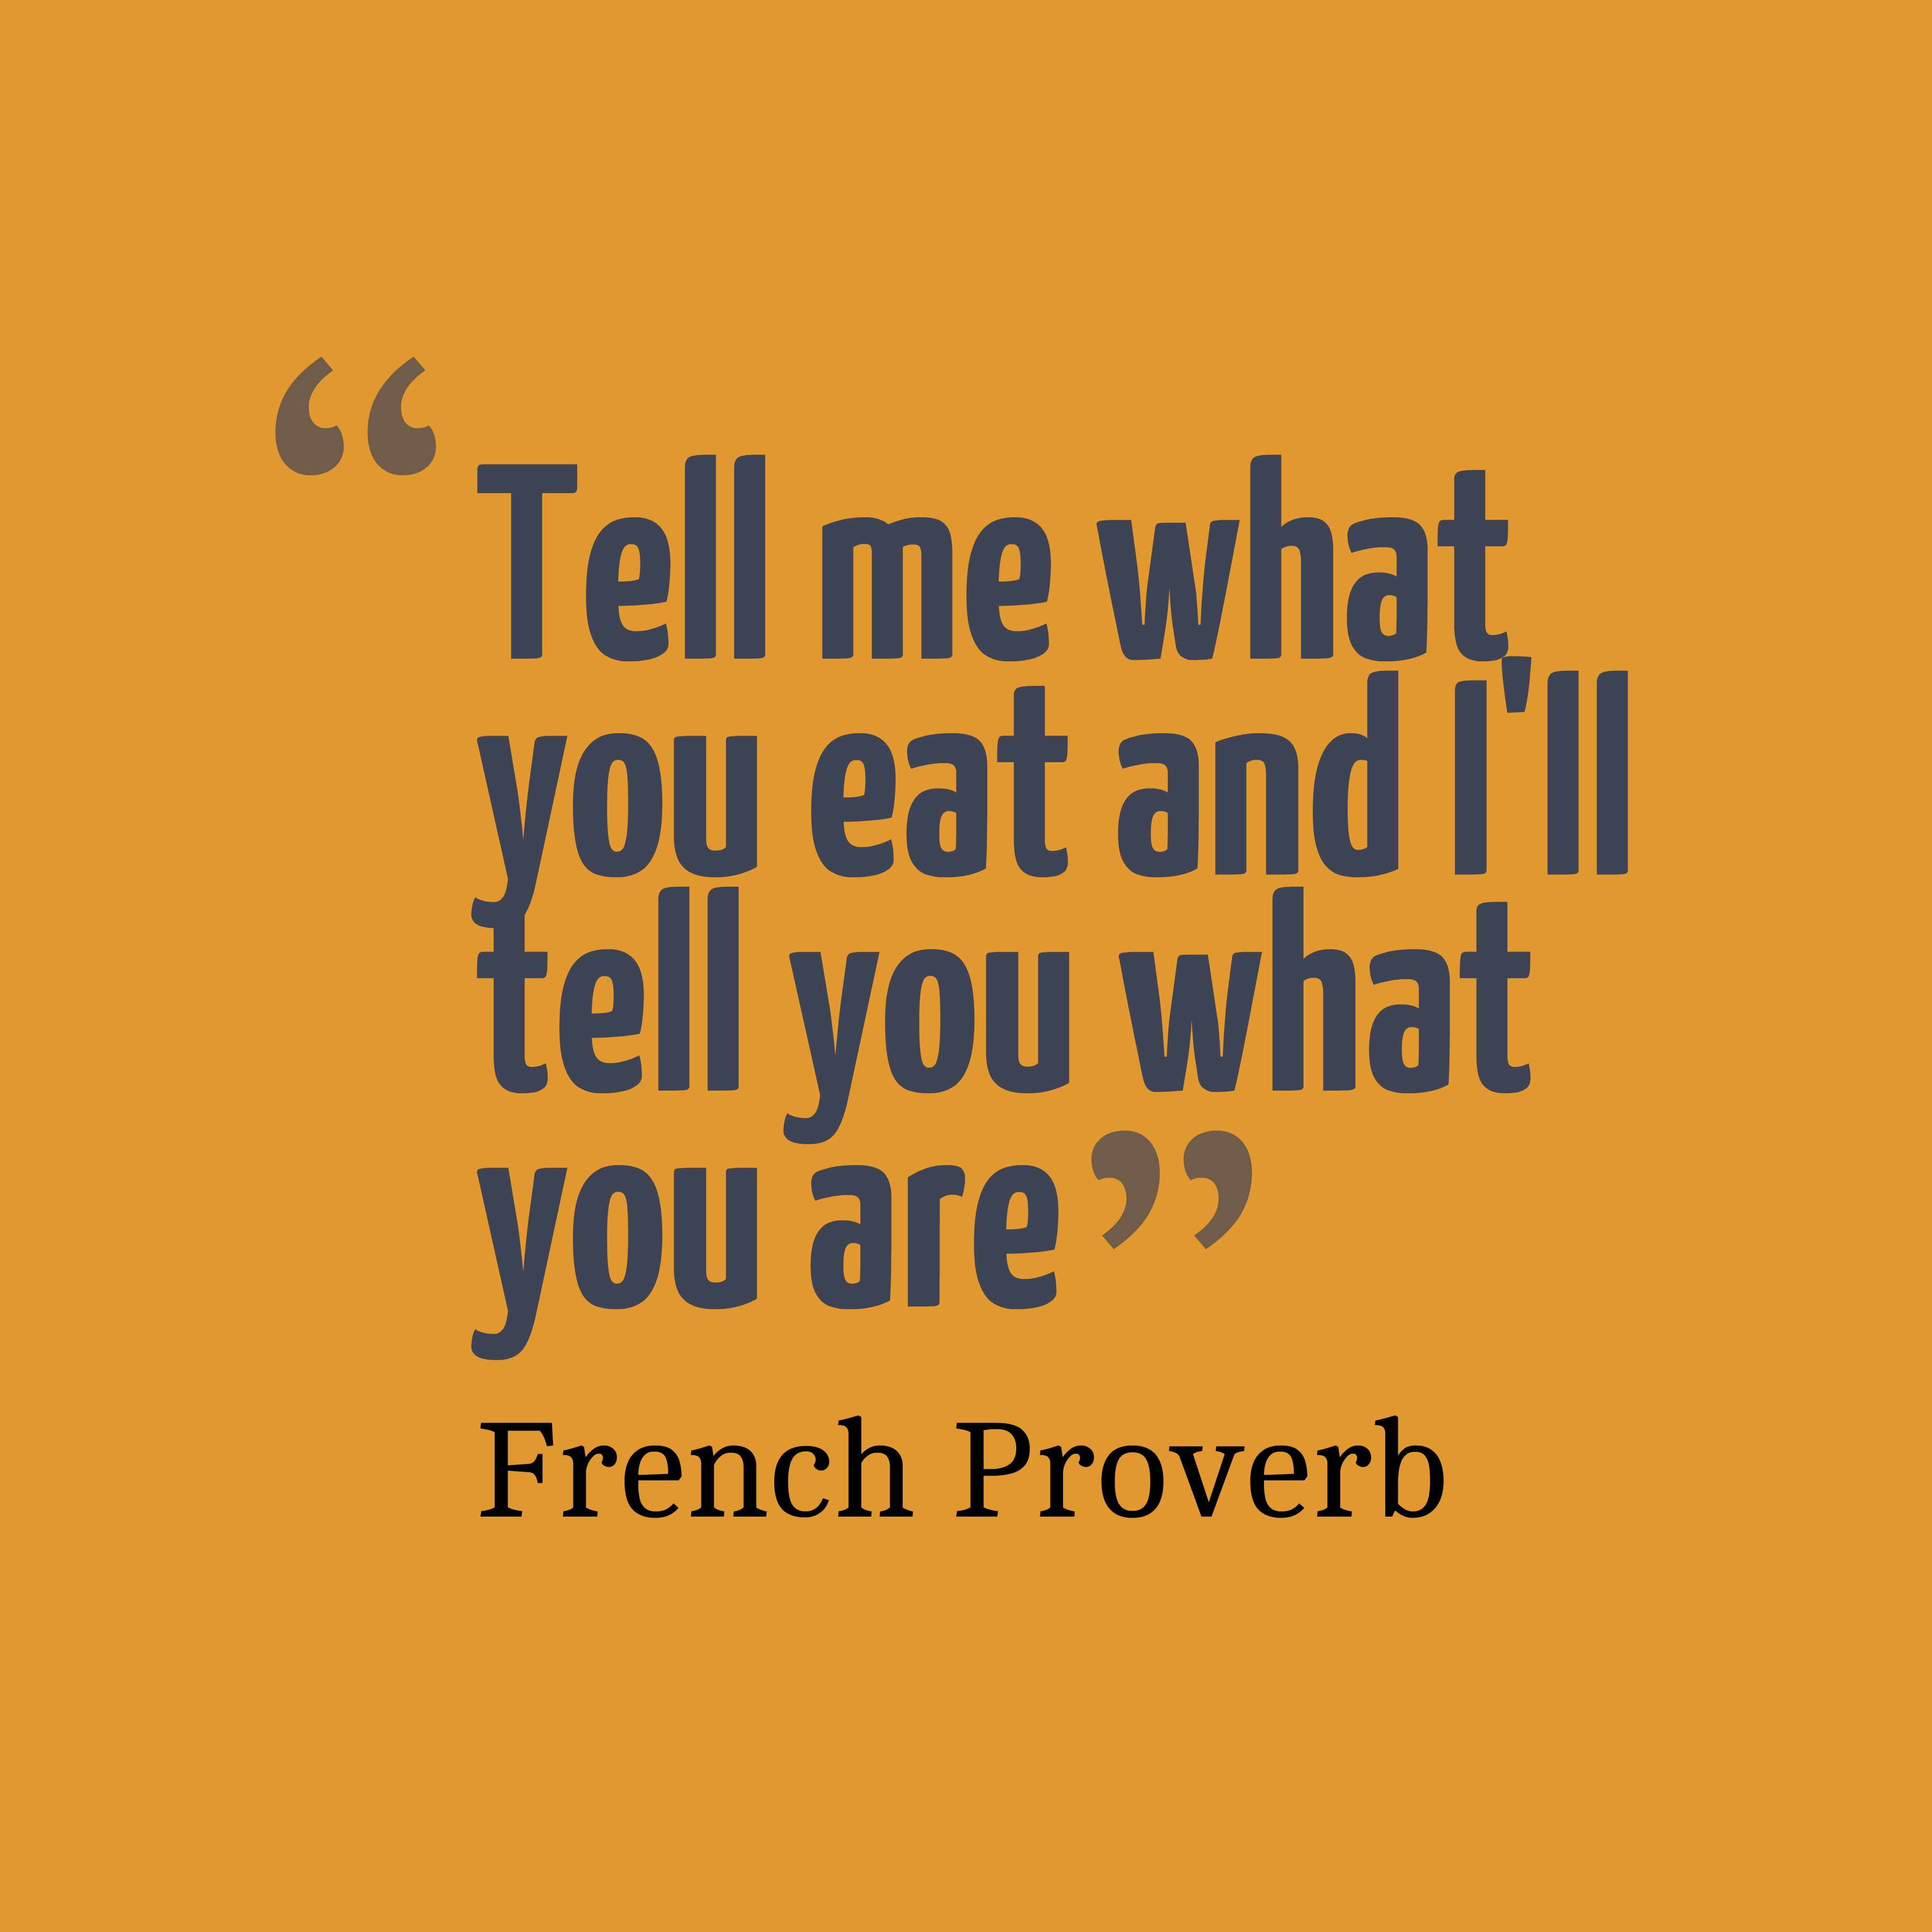 Images of French Proverbs For Food - #rock-cafe